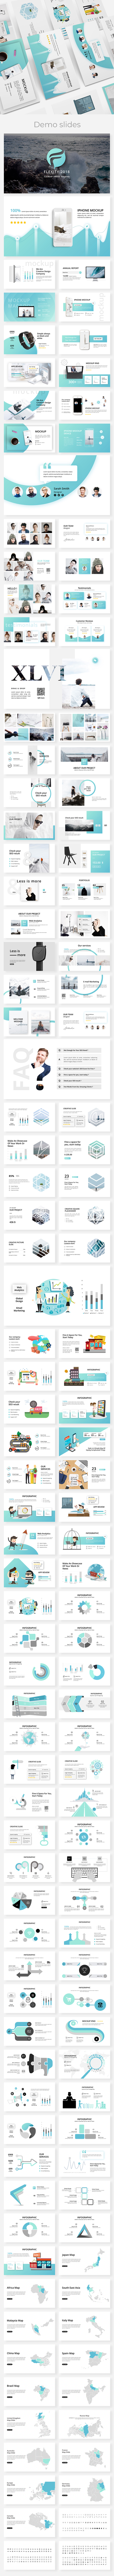 Flexity Creative Powerpoint Template - Creative PowerPoint Templates